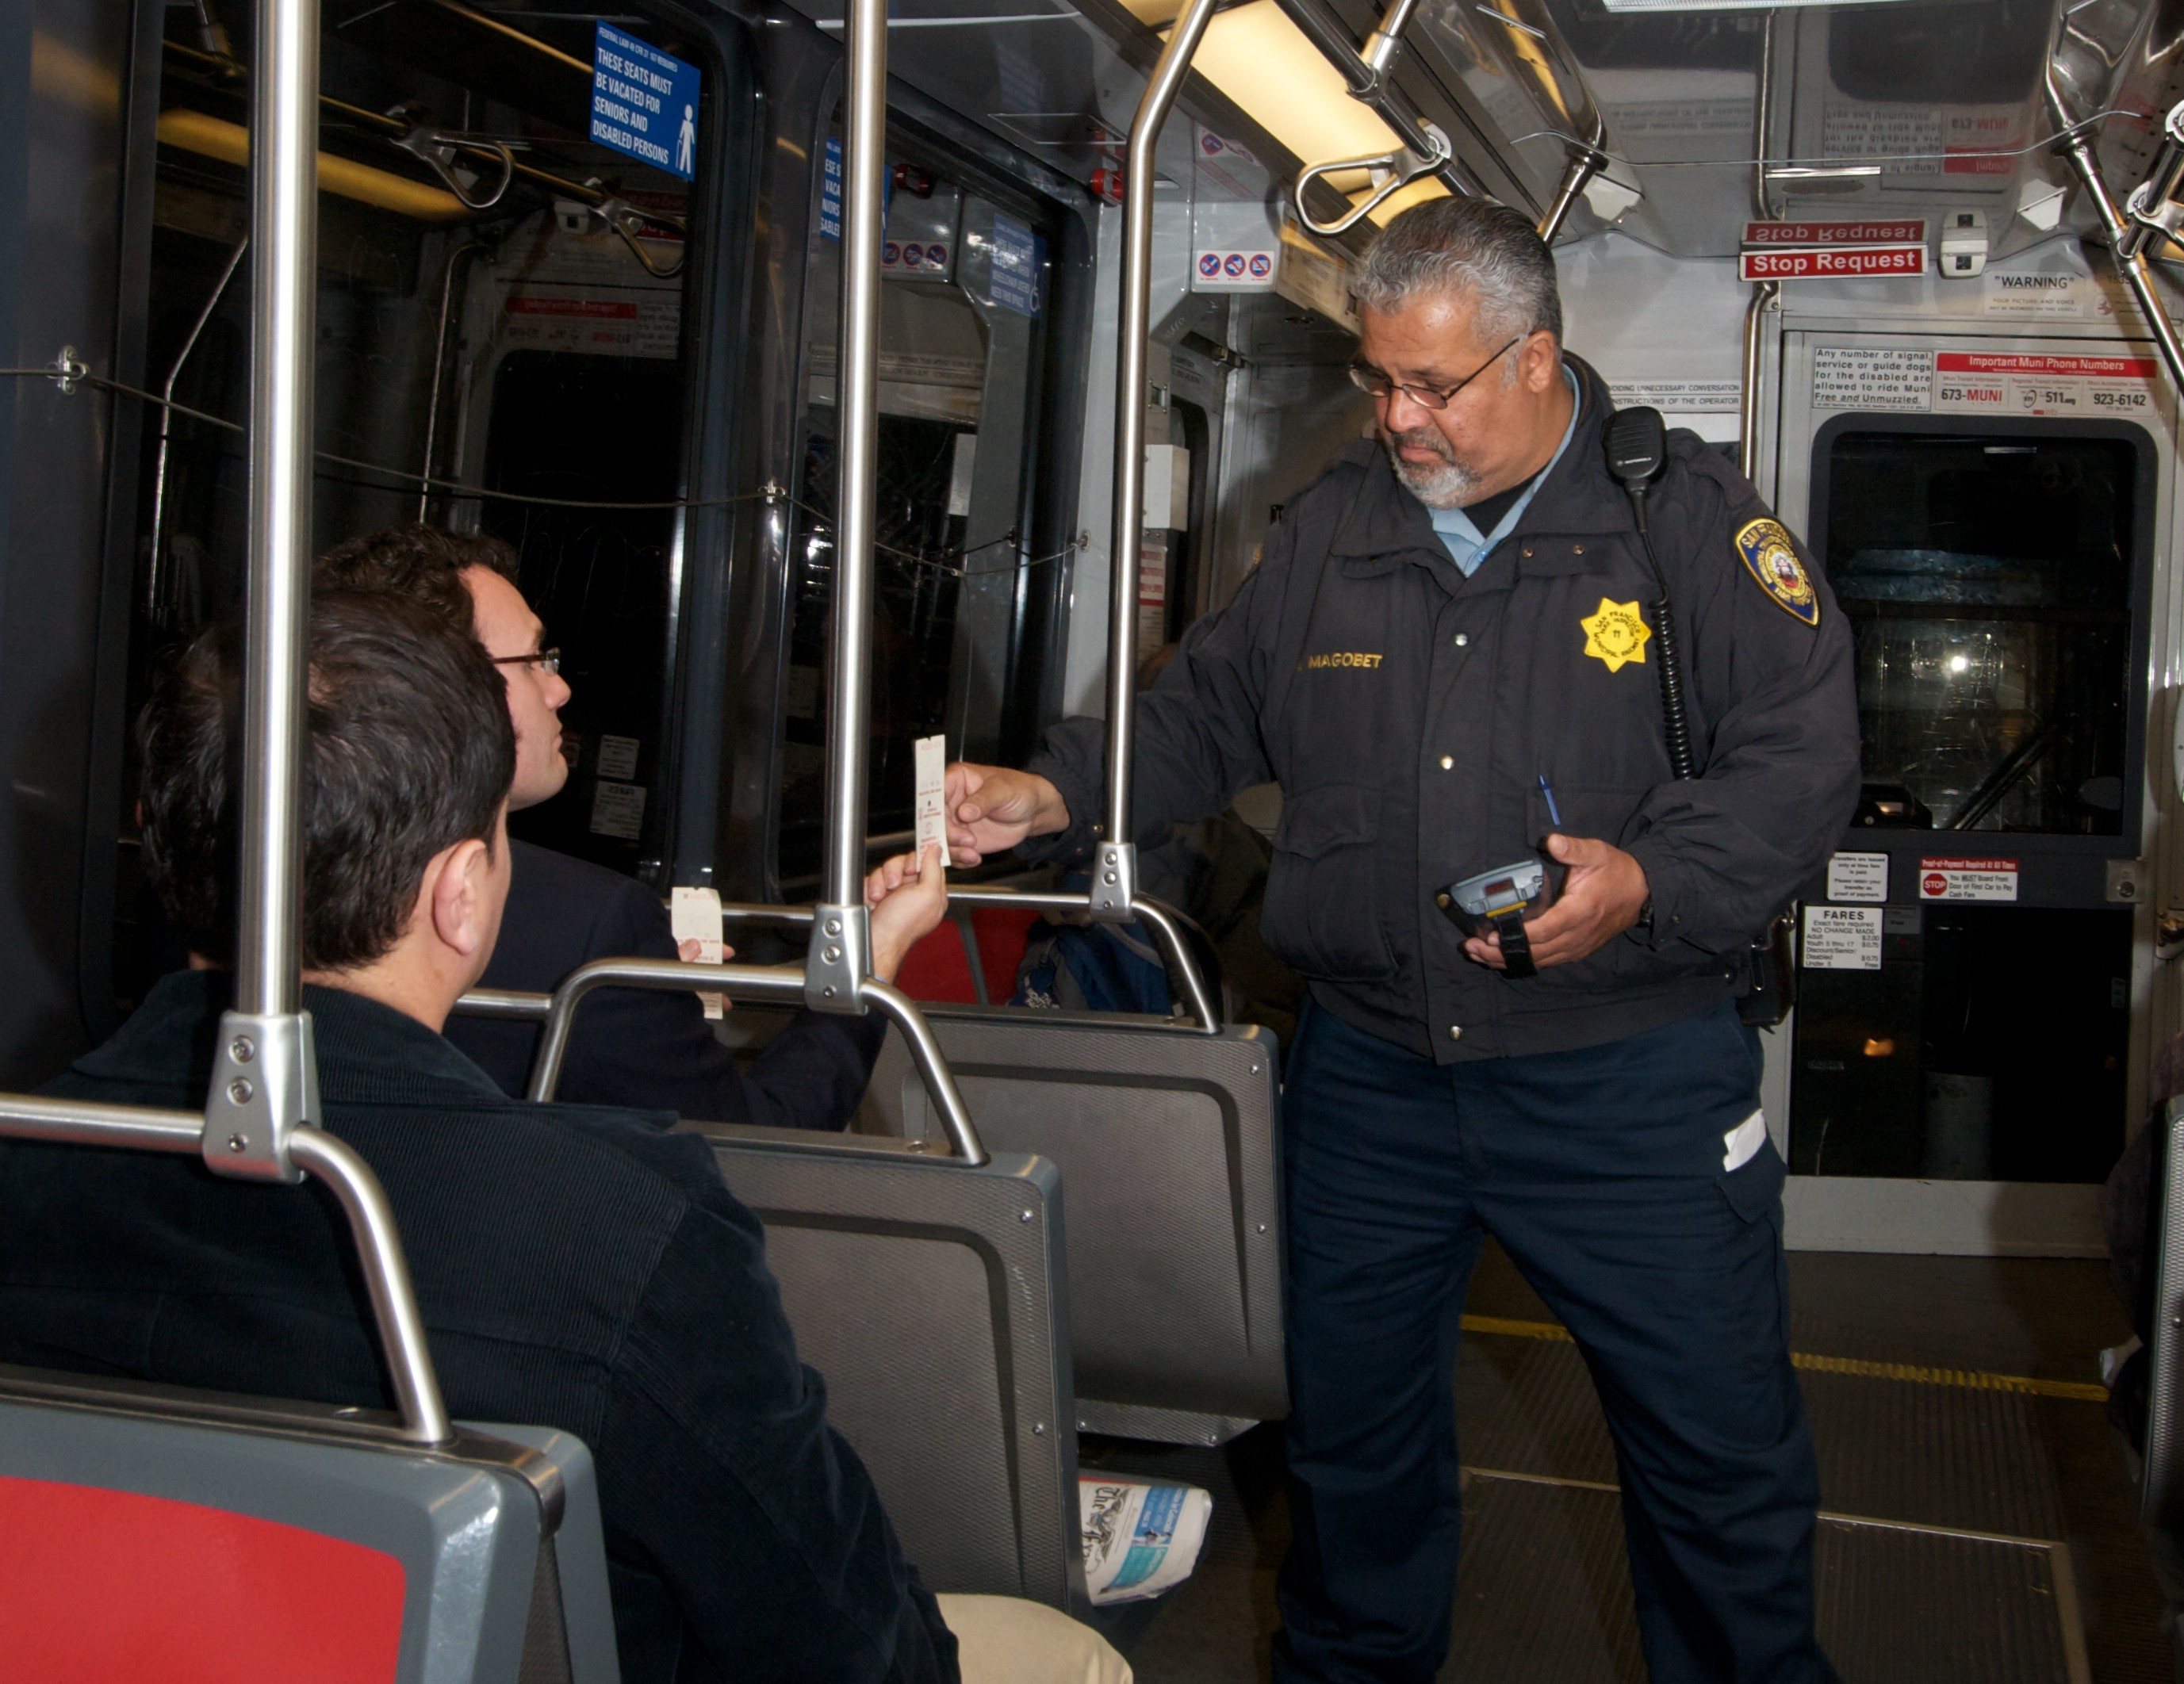 Fare control officer checking proof-of-payment tickets, San Francisco (credit: SFMTA)